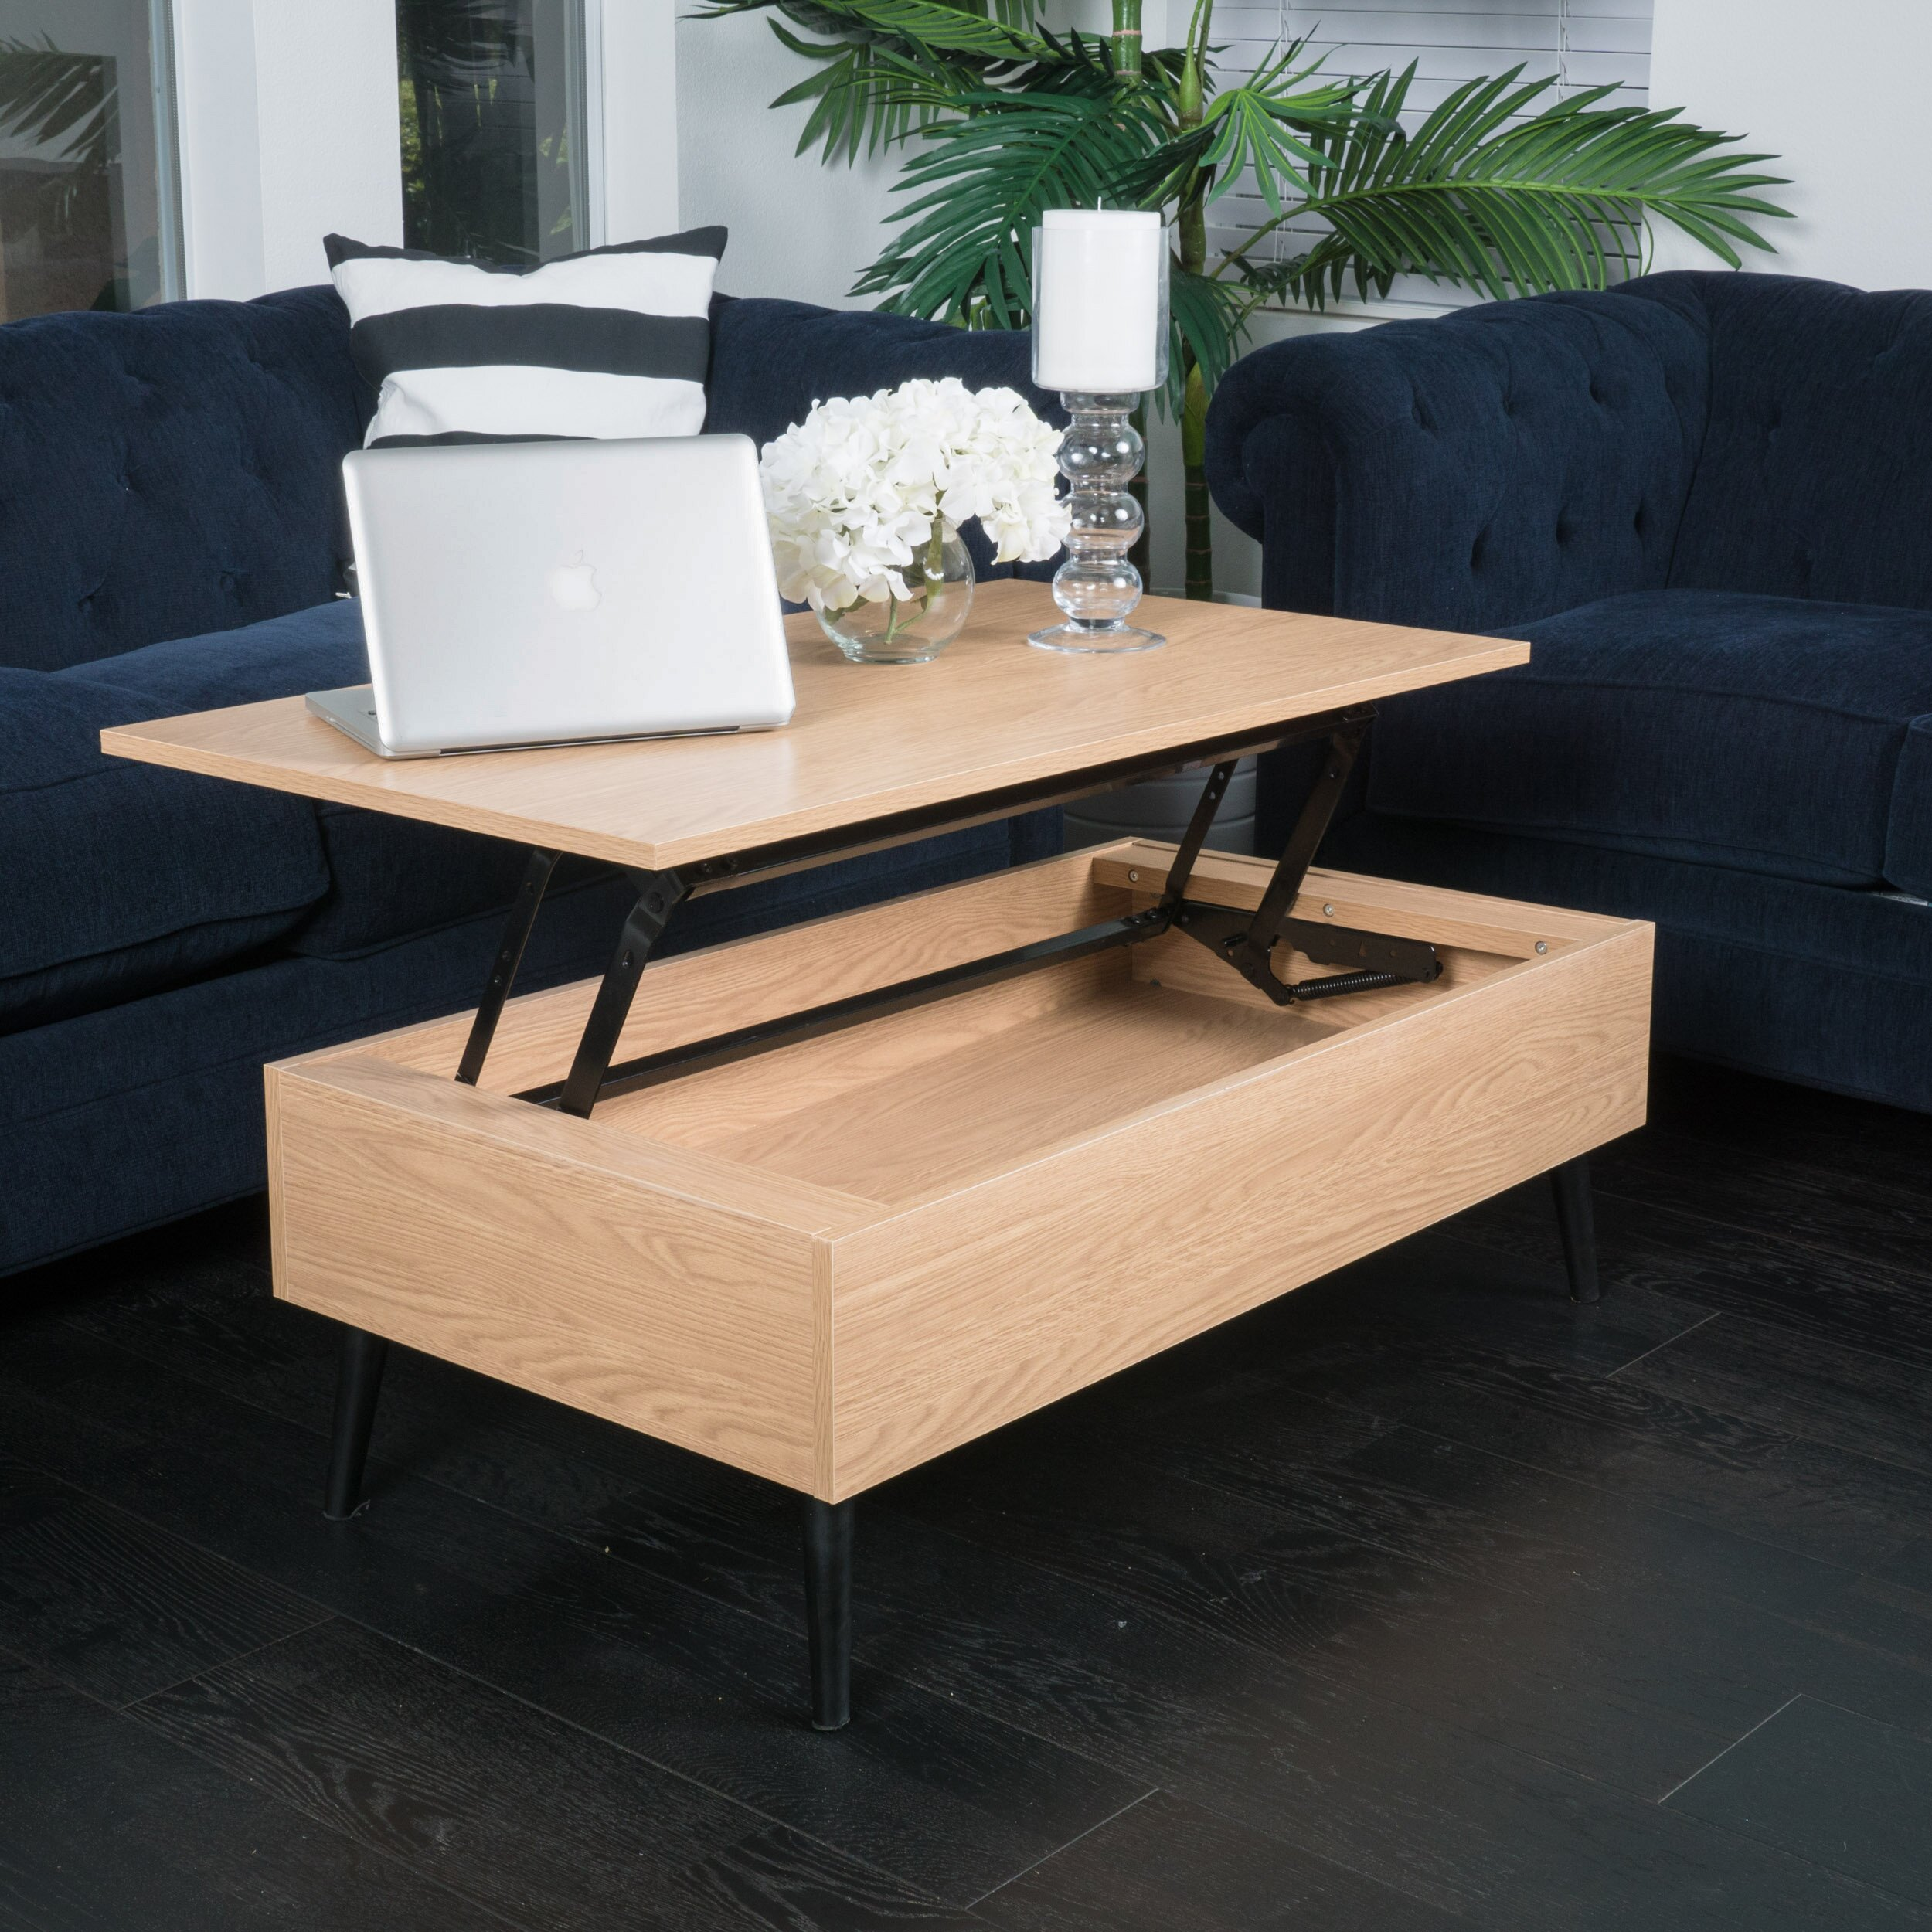 Espresso Coffee Table With Storage: Home Loft Concepts Henry Coffee Table With Lift Top